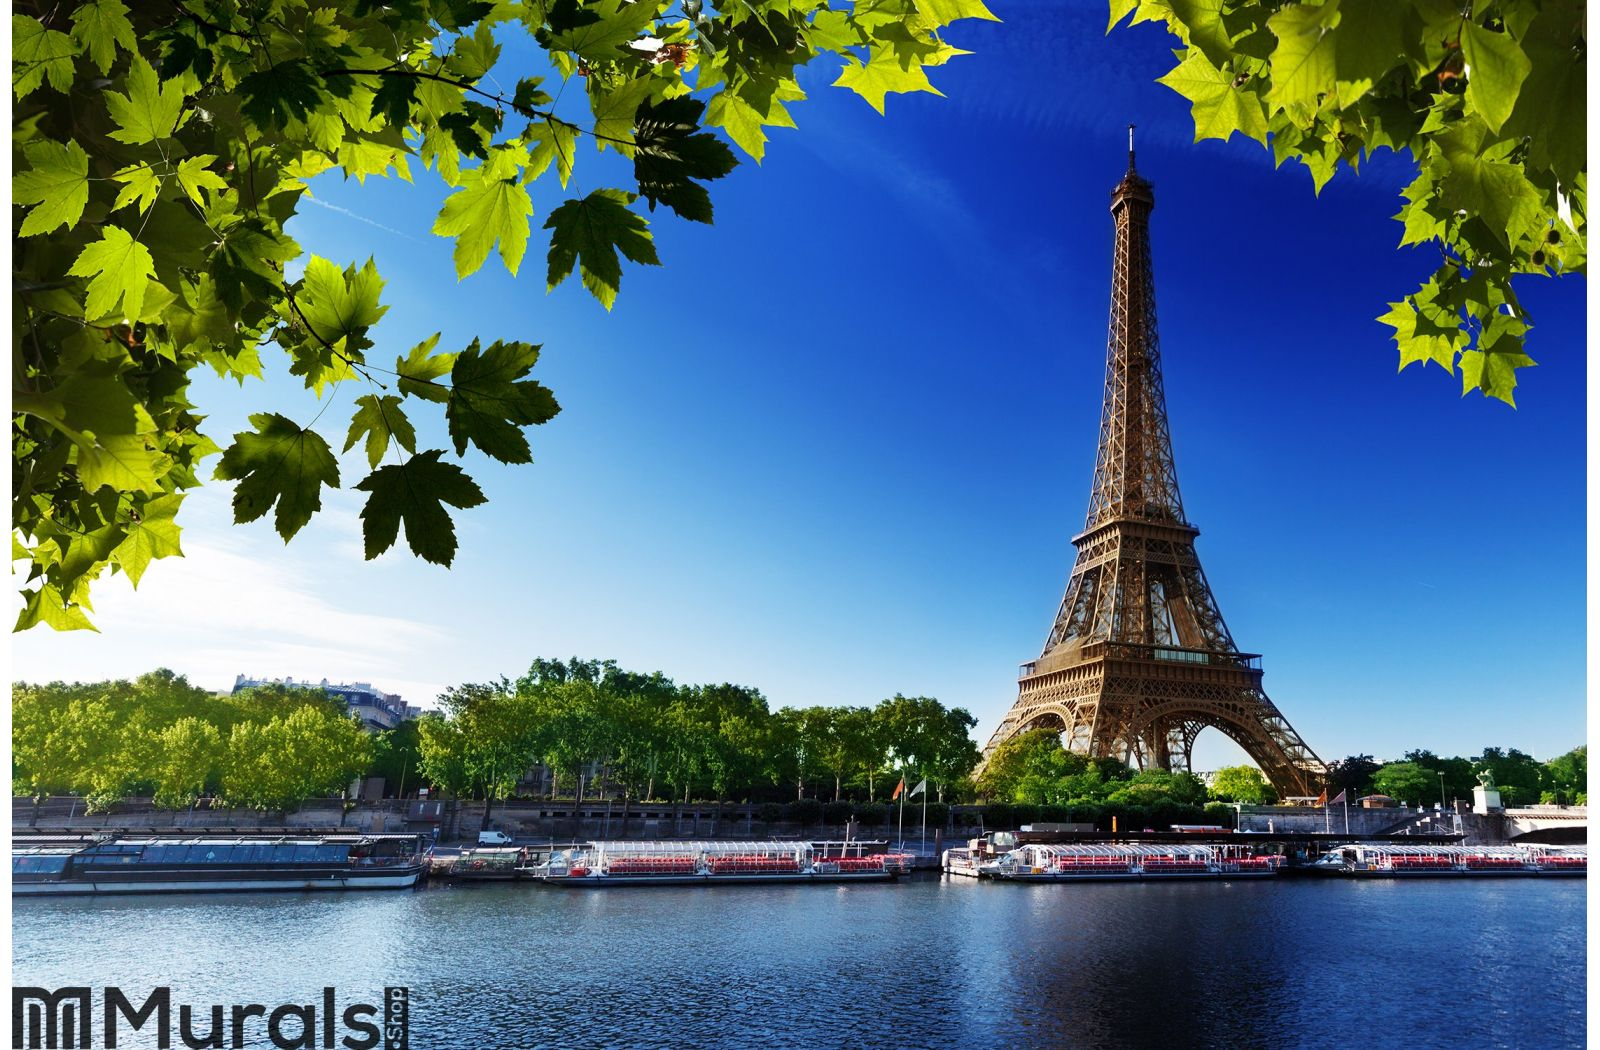 City wall murals wall prints wall decals muralsop seine in paris with eiffel tower wall mural amipublicfo Images